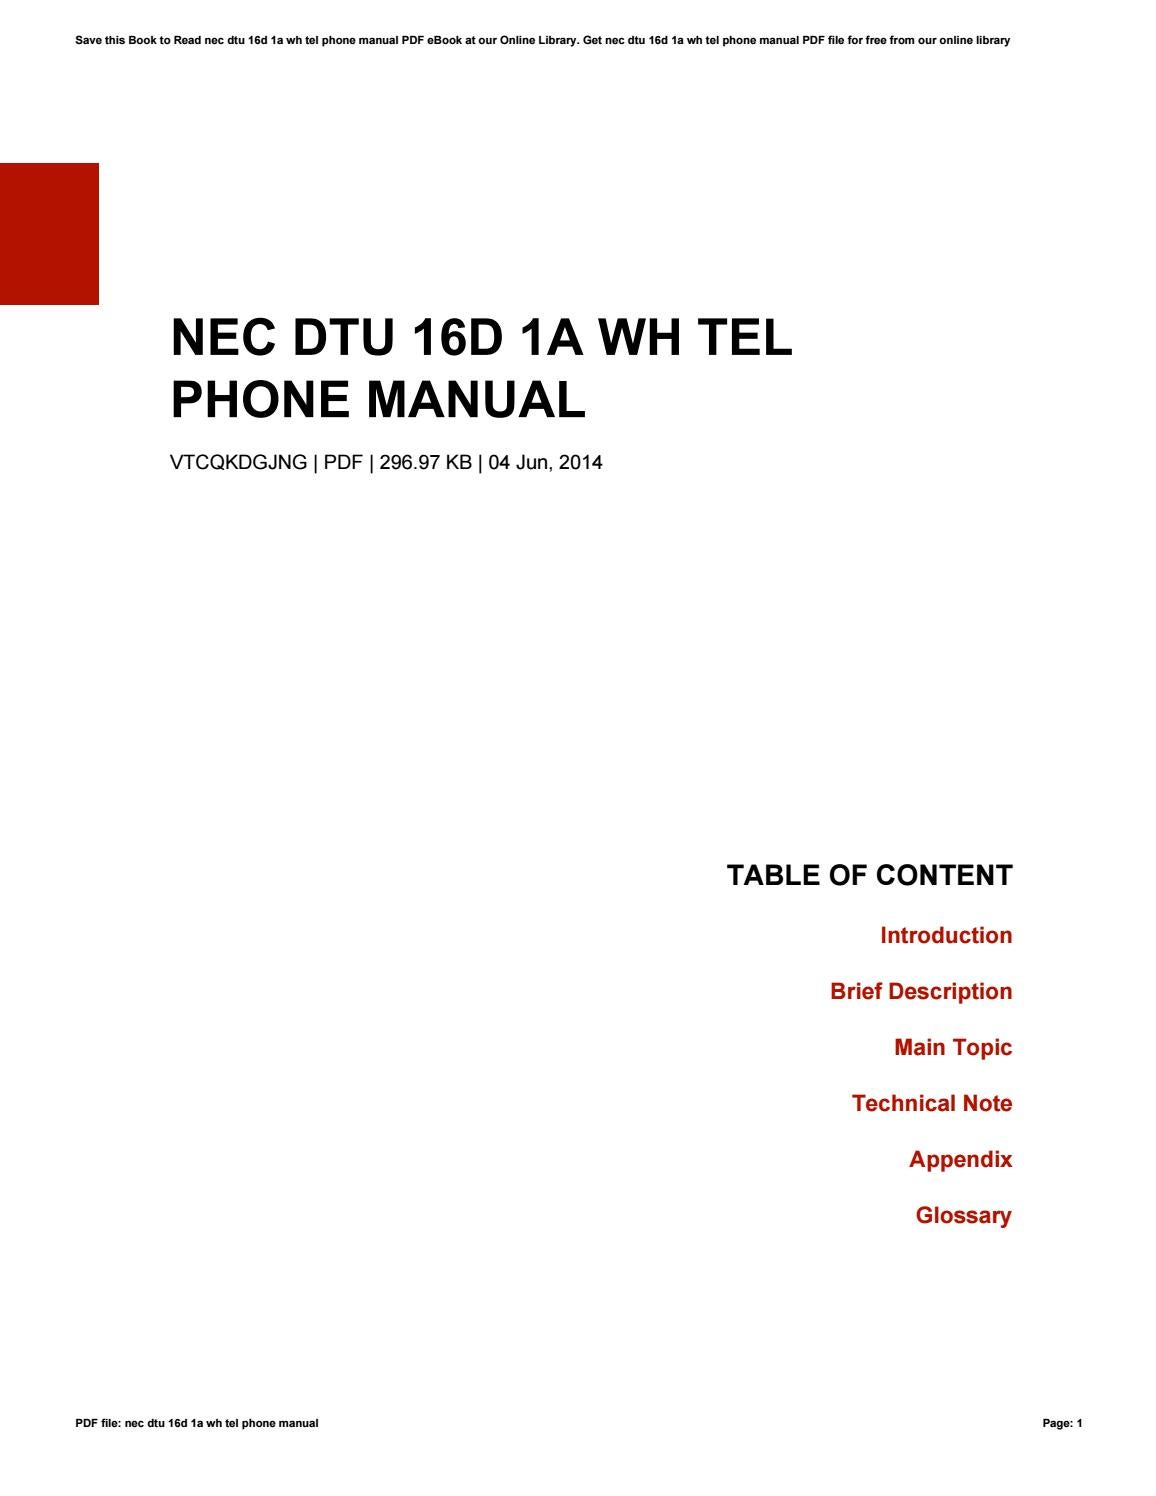 phone nec 16d instructions manual in french